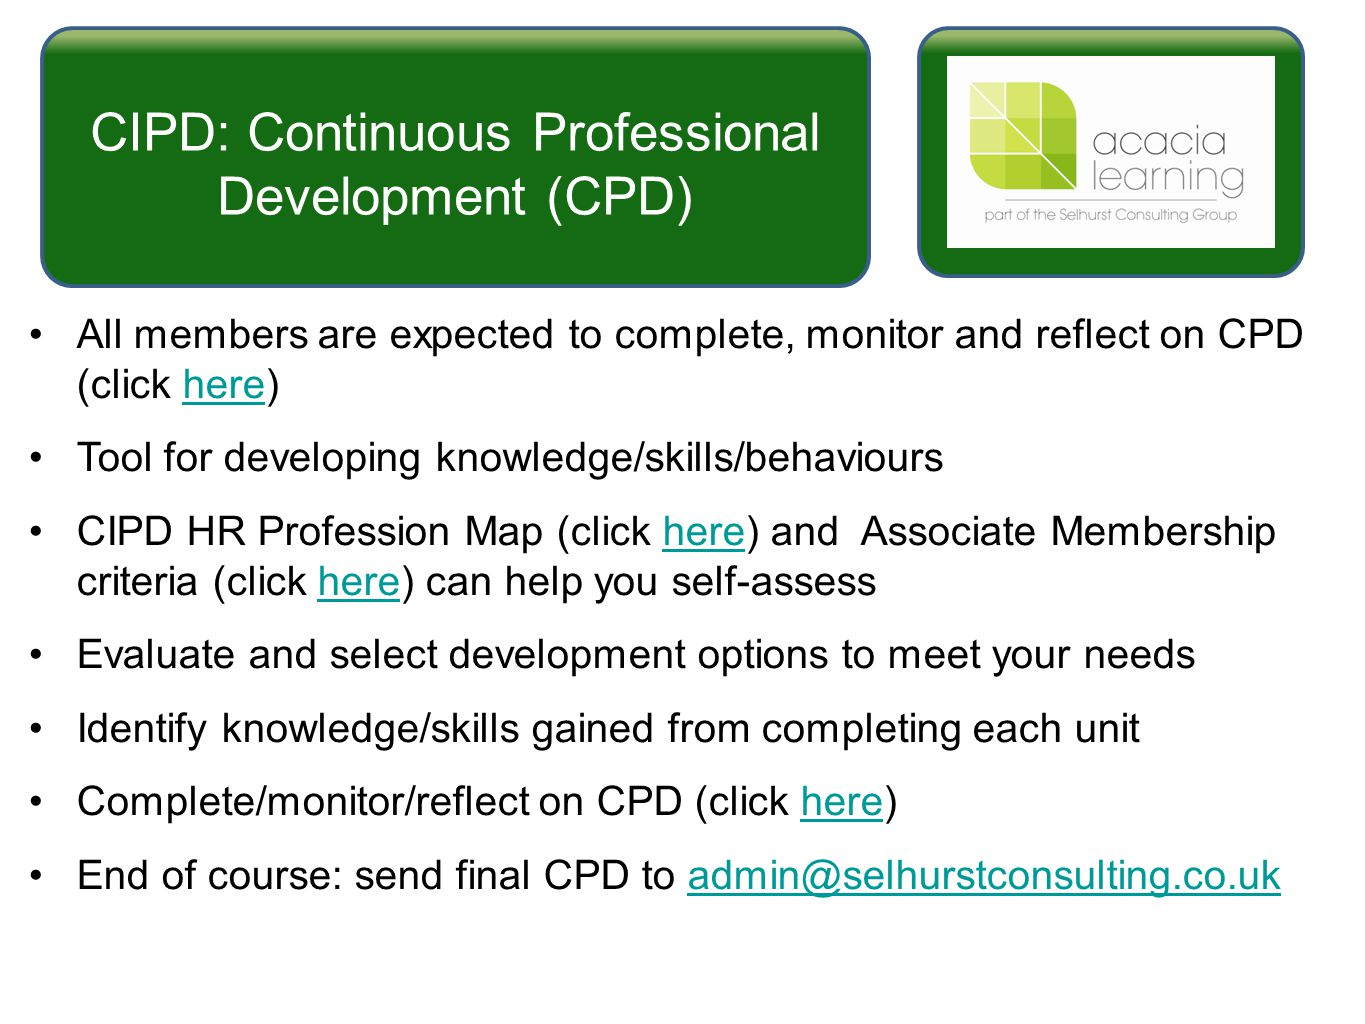 cipd hr profession map